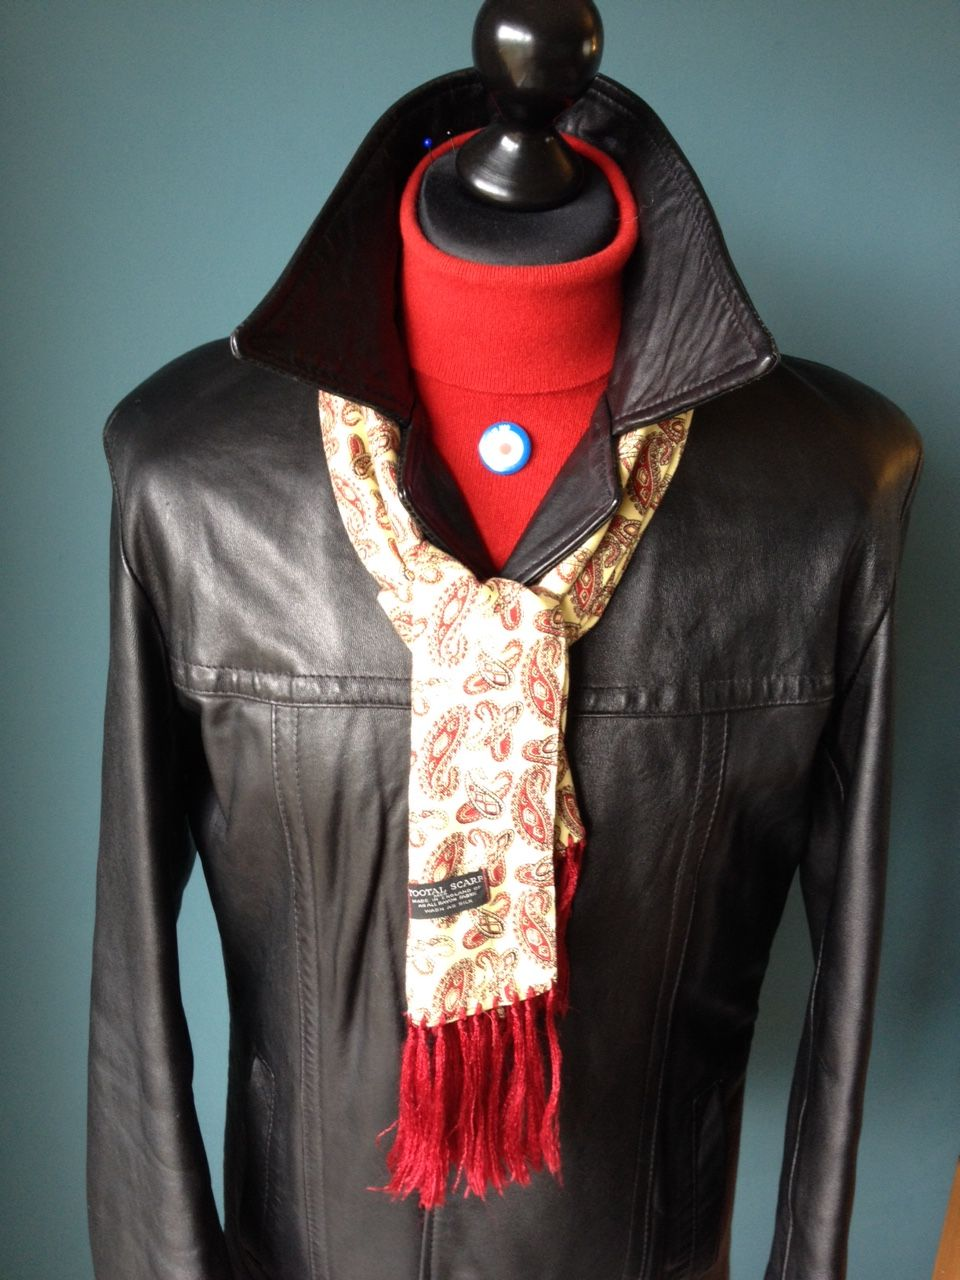 Another nice leather, with a cashmere polo and a vintage